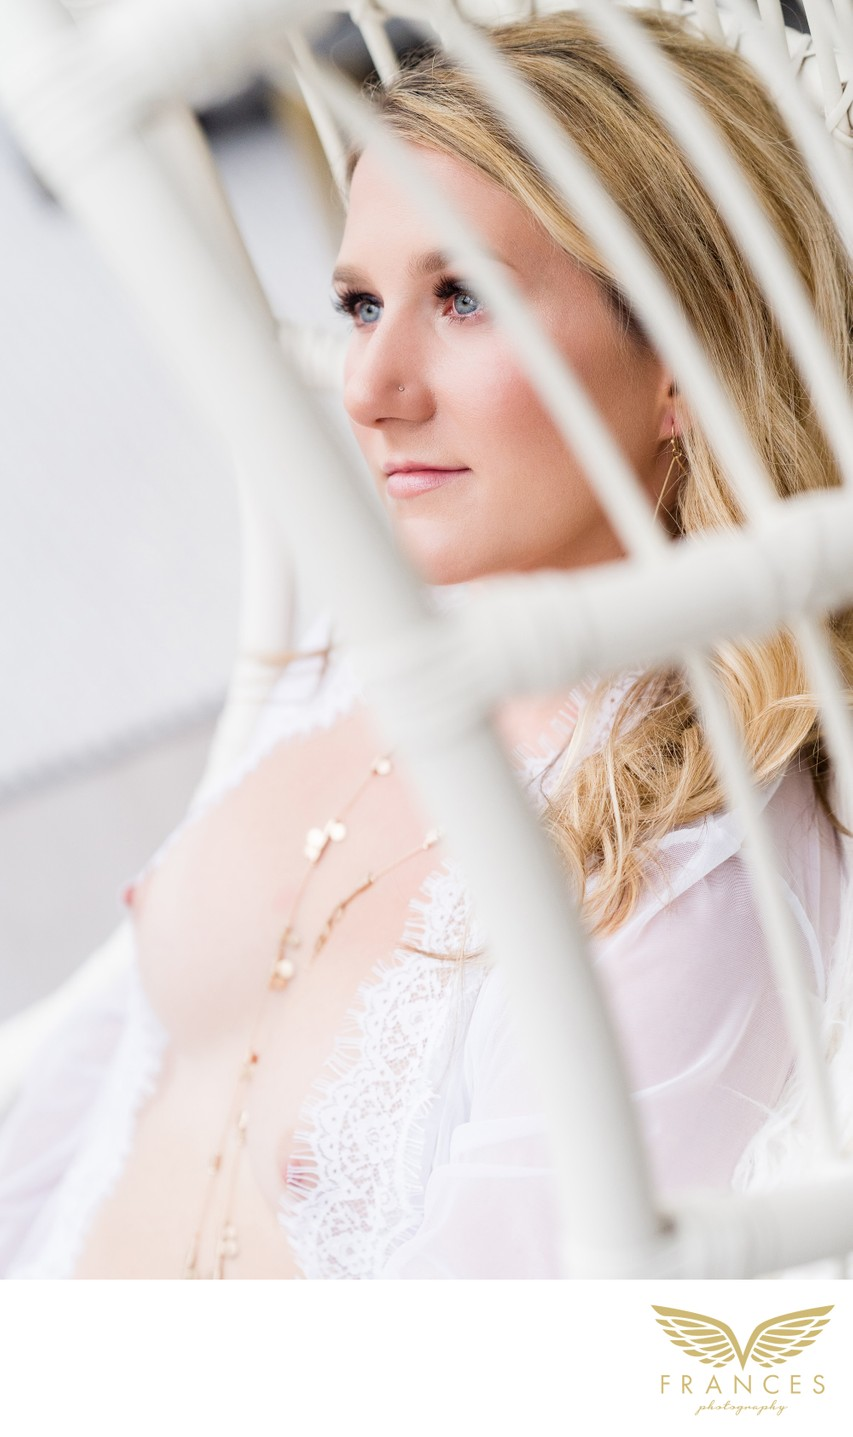 Intimate Photography from a Bridal Boudoir Photo Shoot